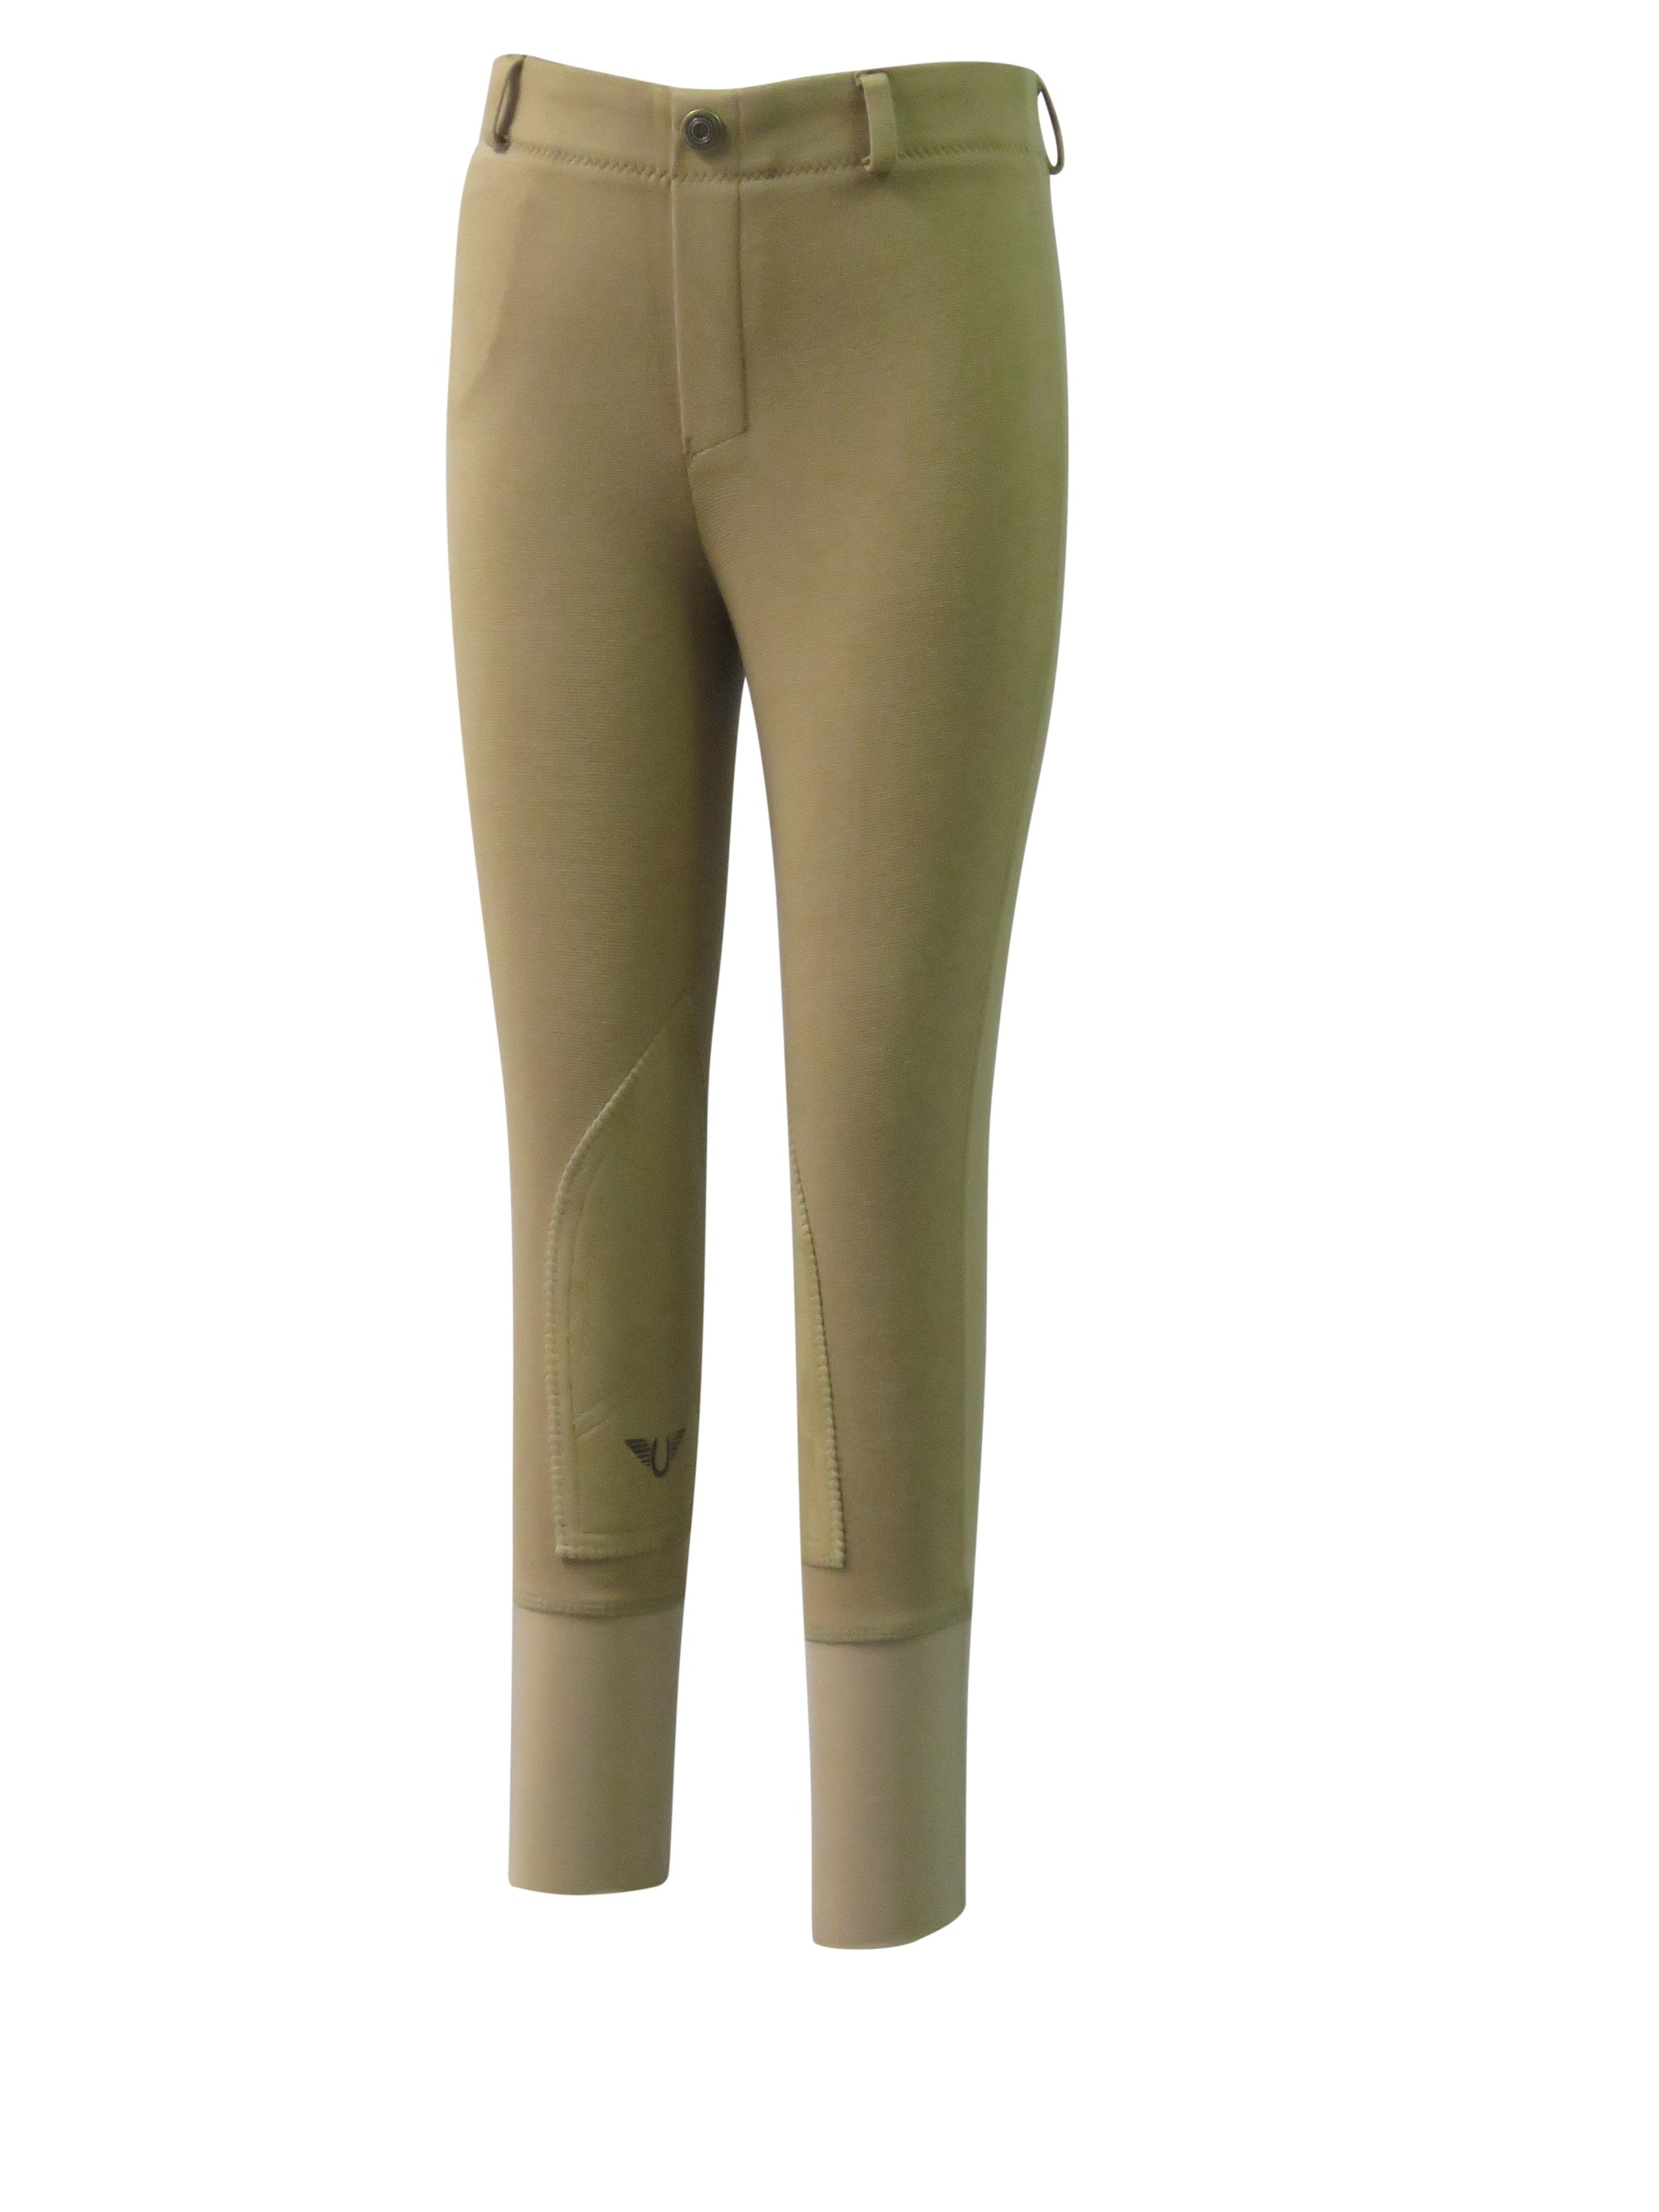 Children's Cotton Pull-On Knee Patch Breeches - TuffRider - Breeches.com